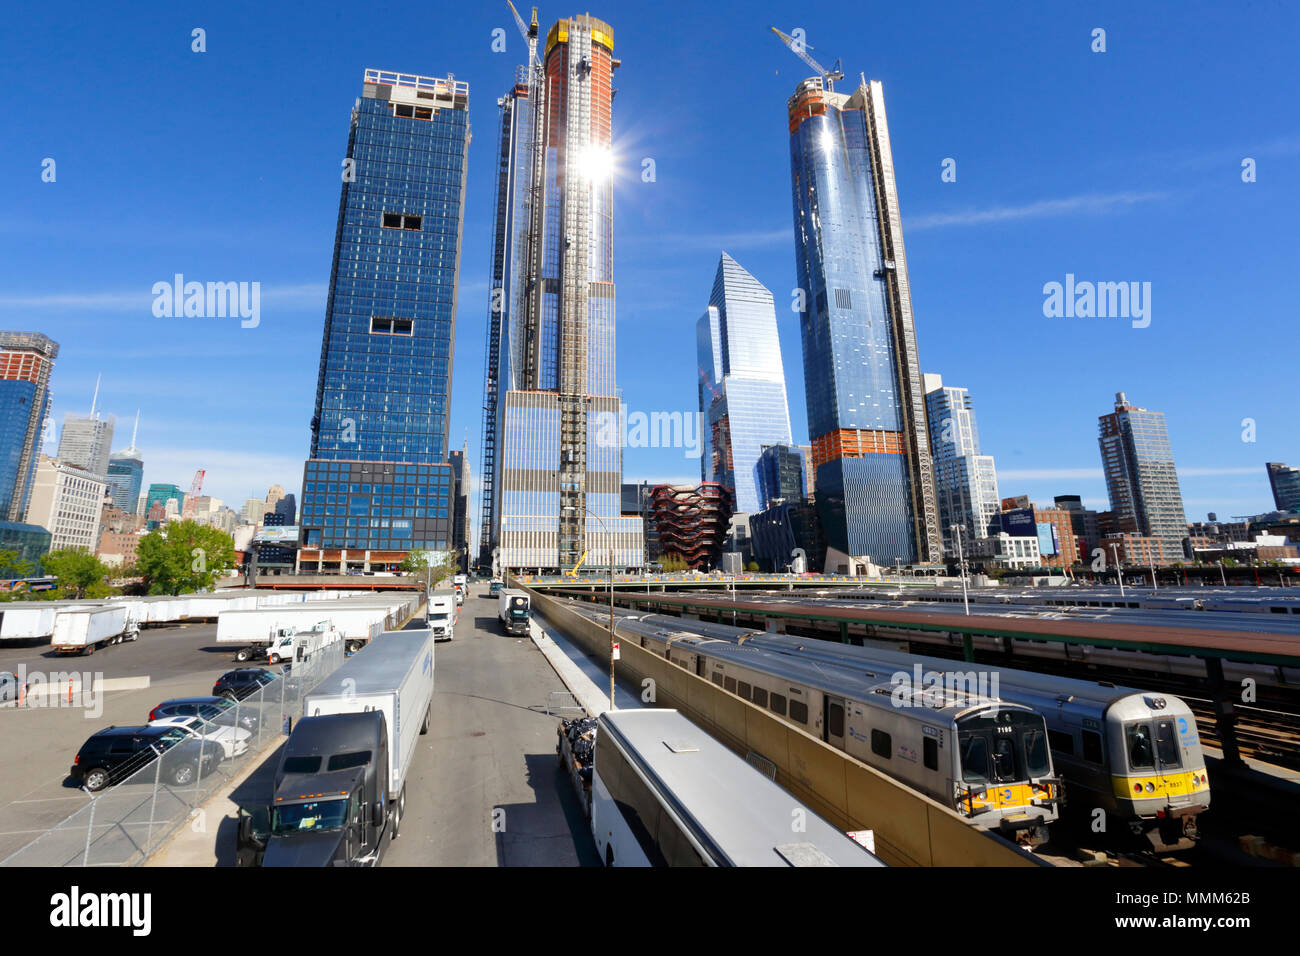 Hudson Yards Skyscrapers loom over the West side of Manhattan - Stock Image